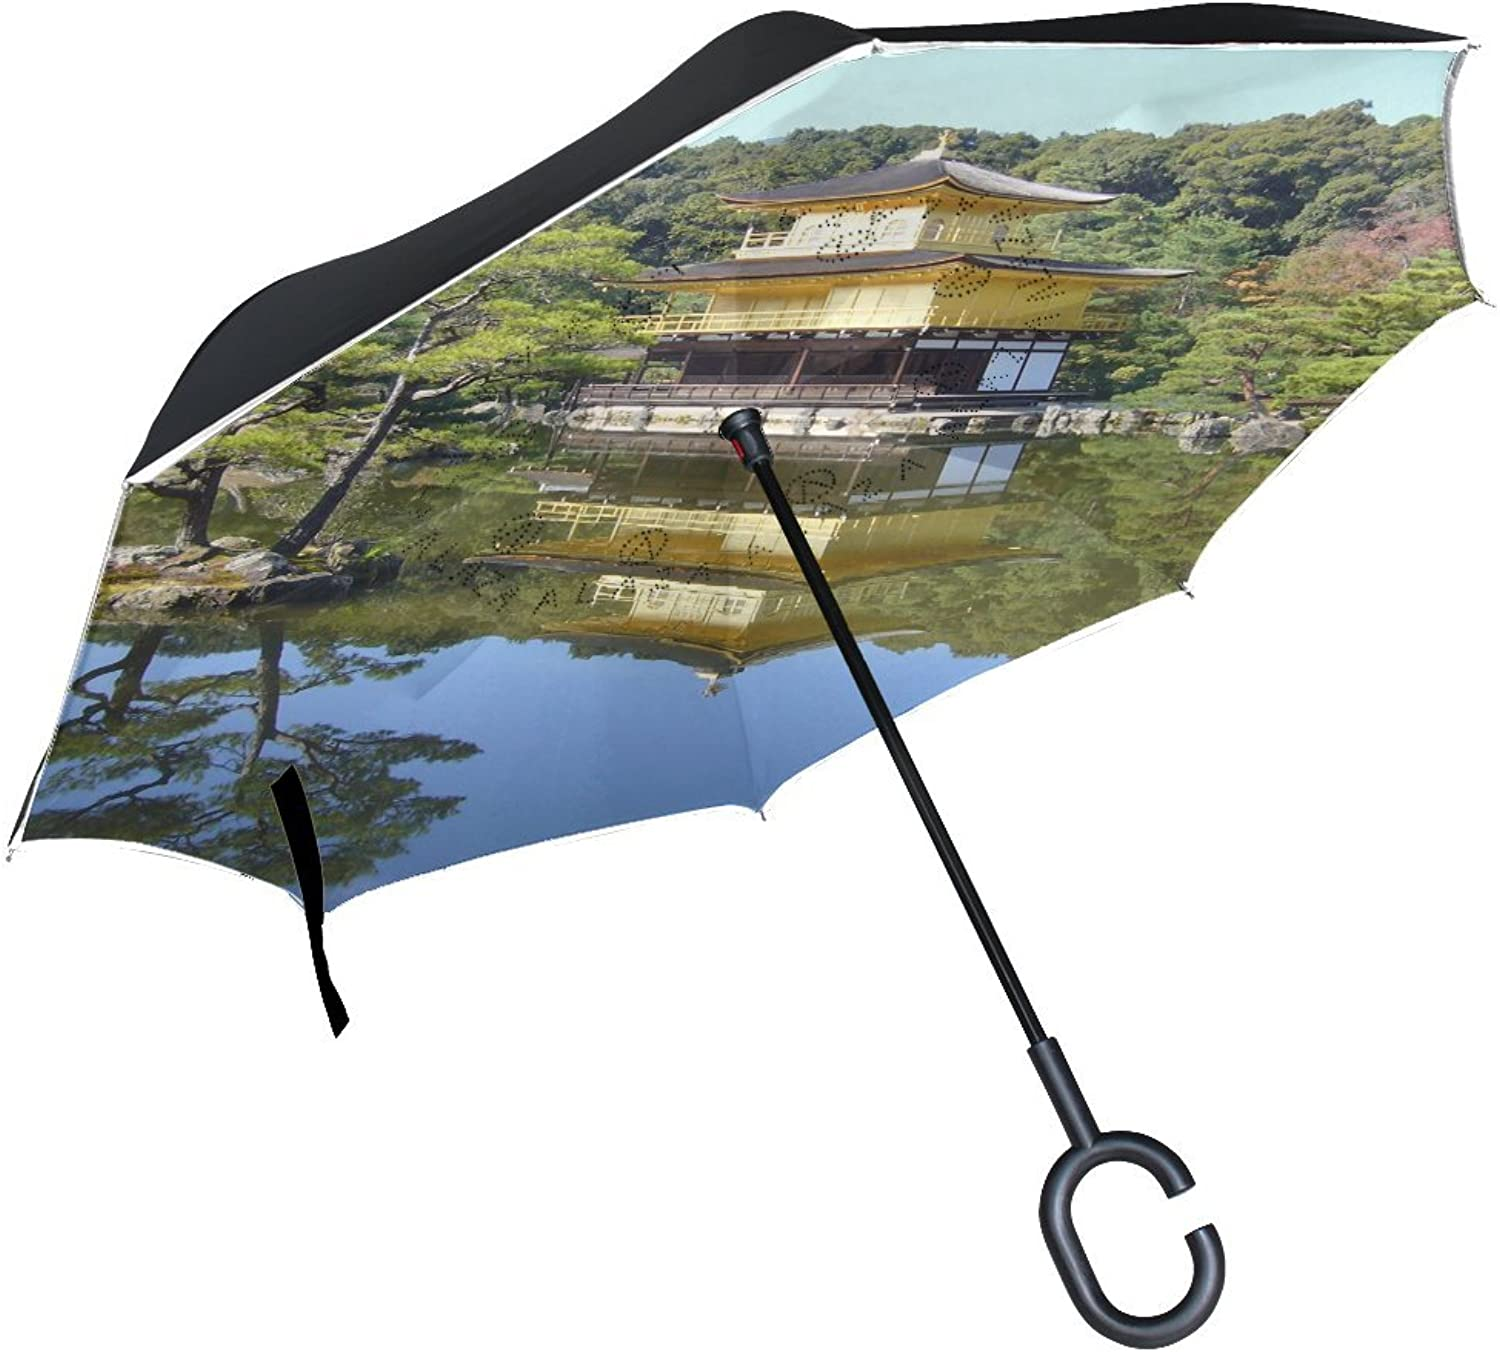 Countriy Japan Kyoto Ingreened Umbrella Large Double Layer Outdoor Rain Sun Car Reversible Umbrella